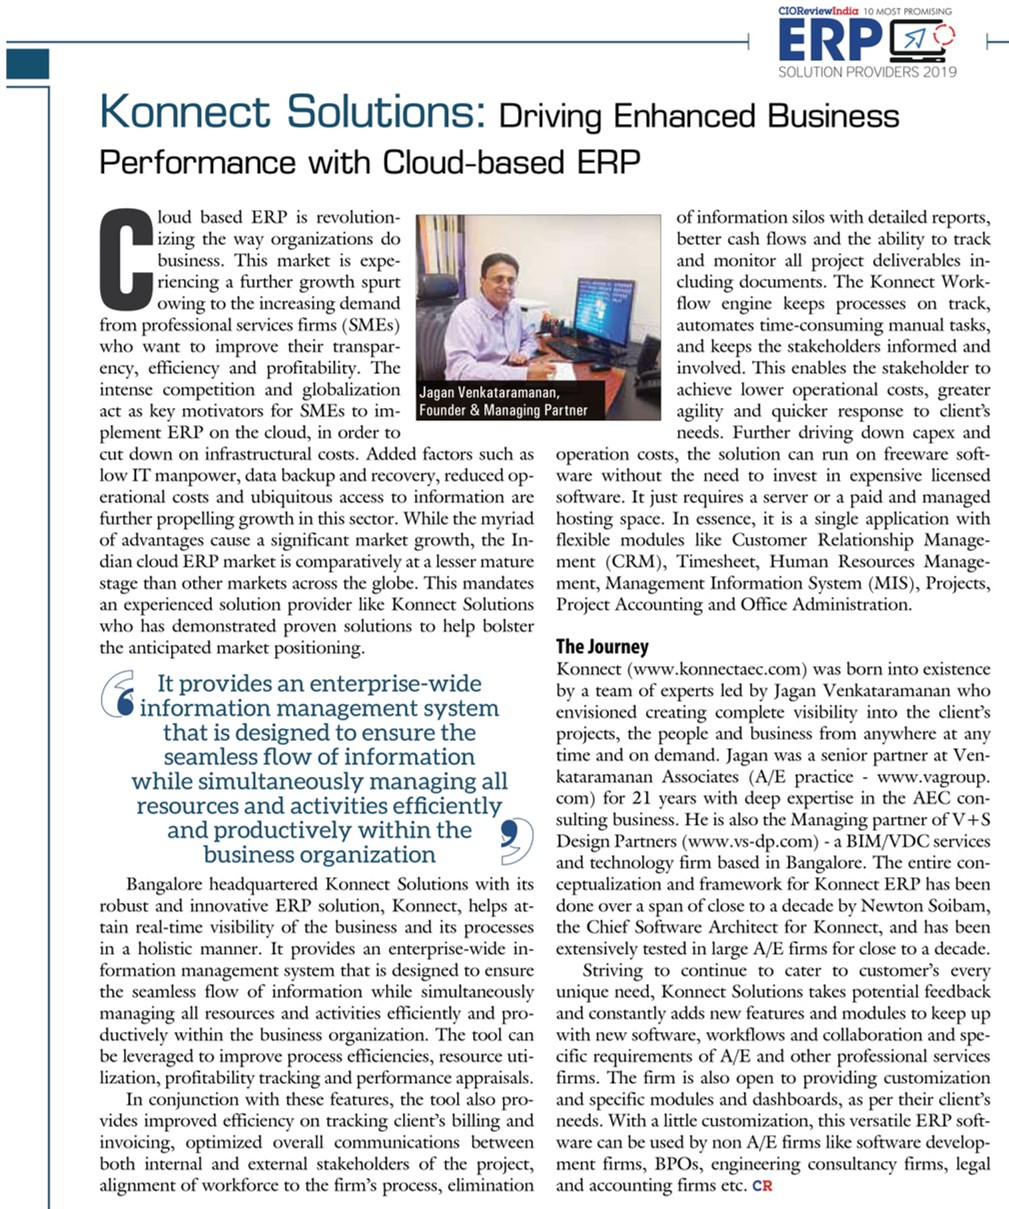 CIO Review India Honors Konnect